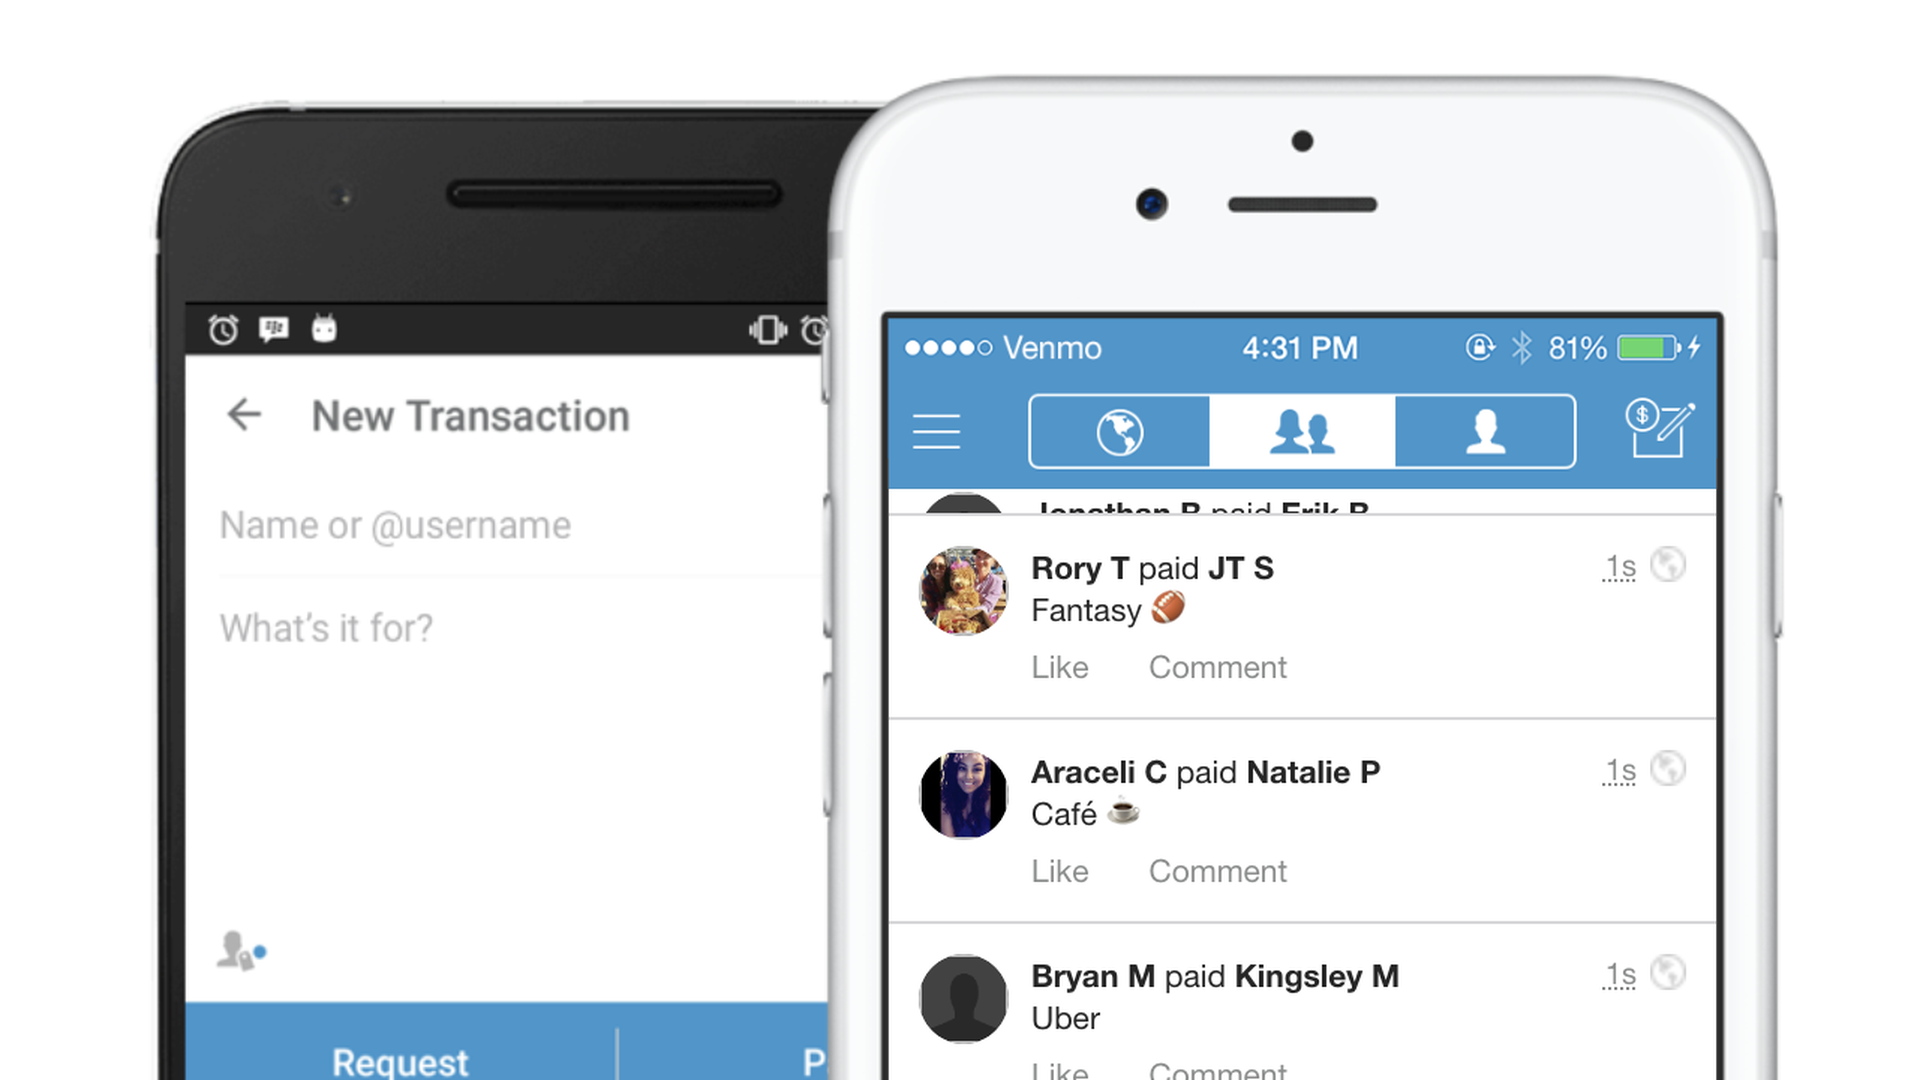 Photos of Venmo app on iPhone screens